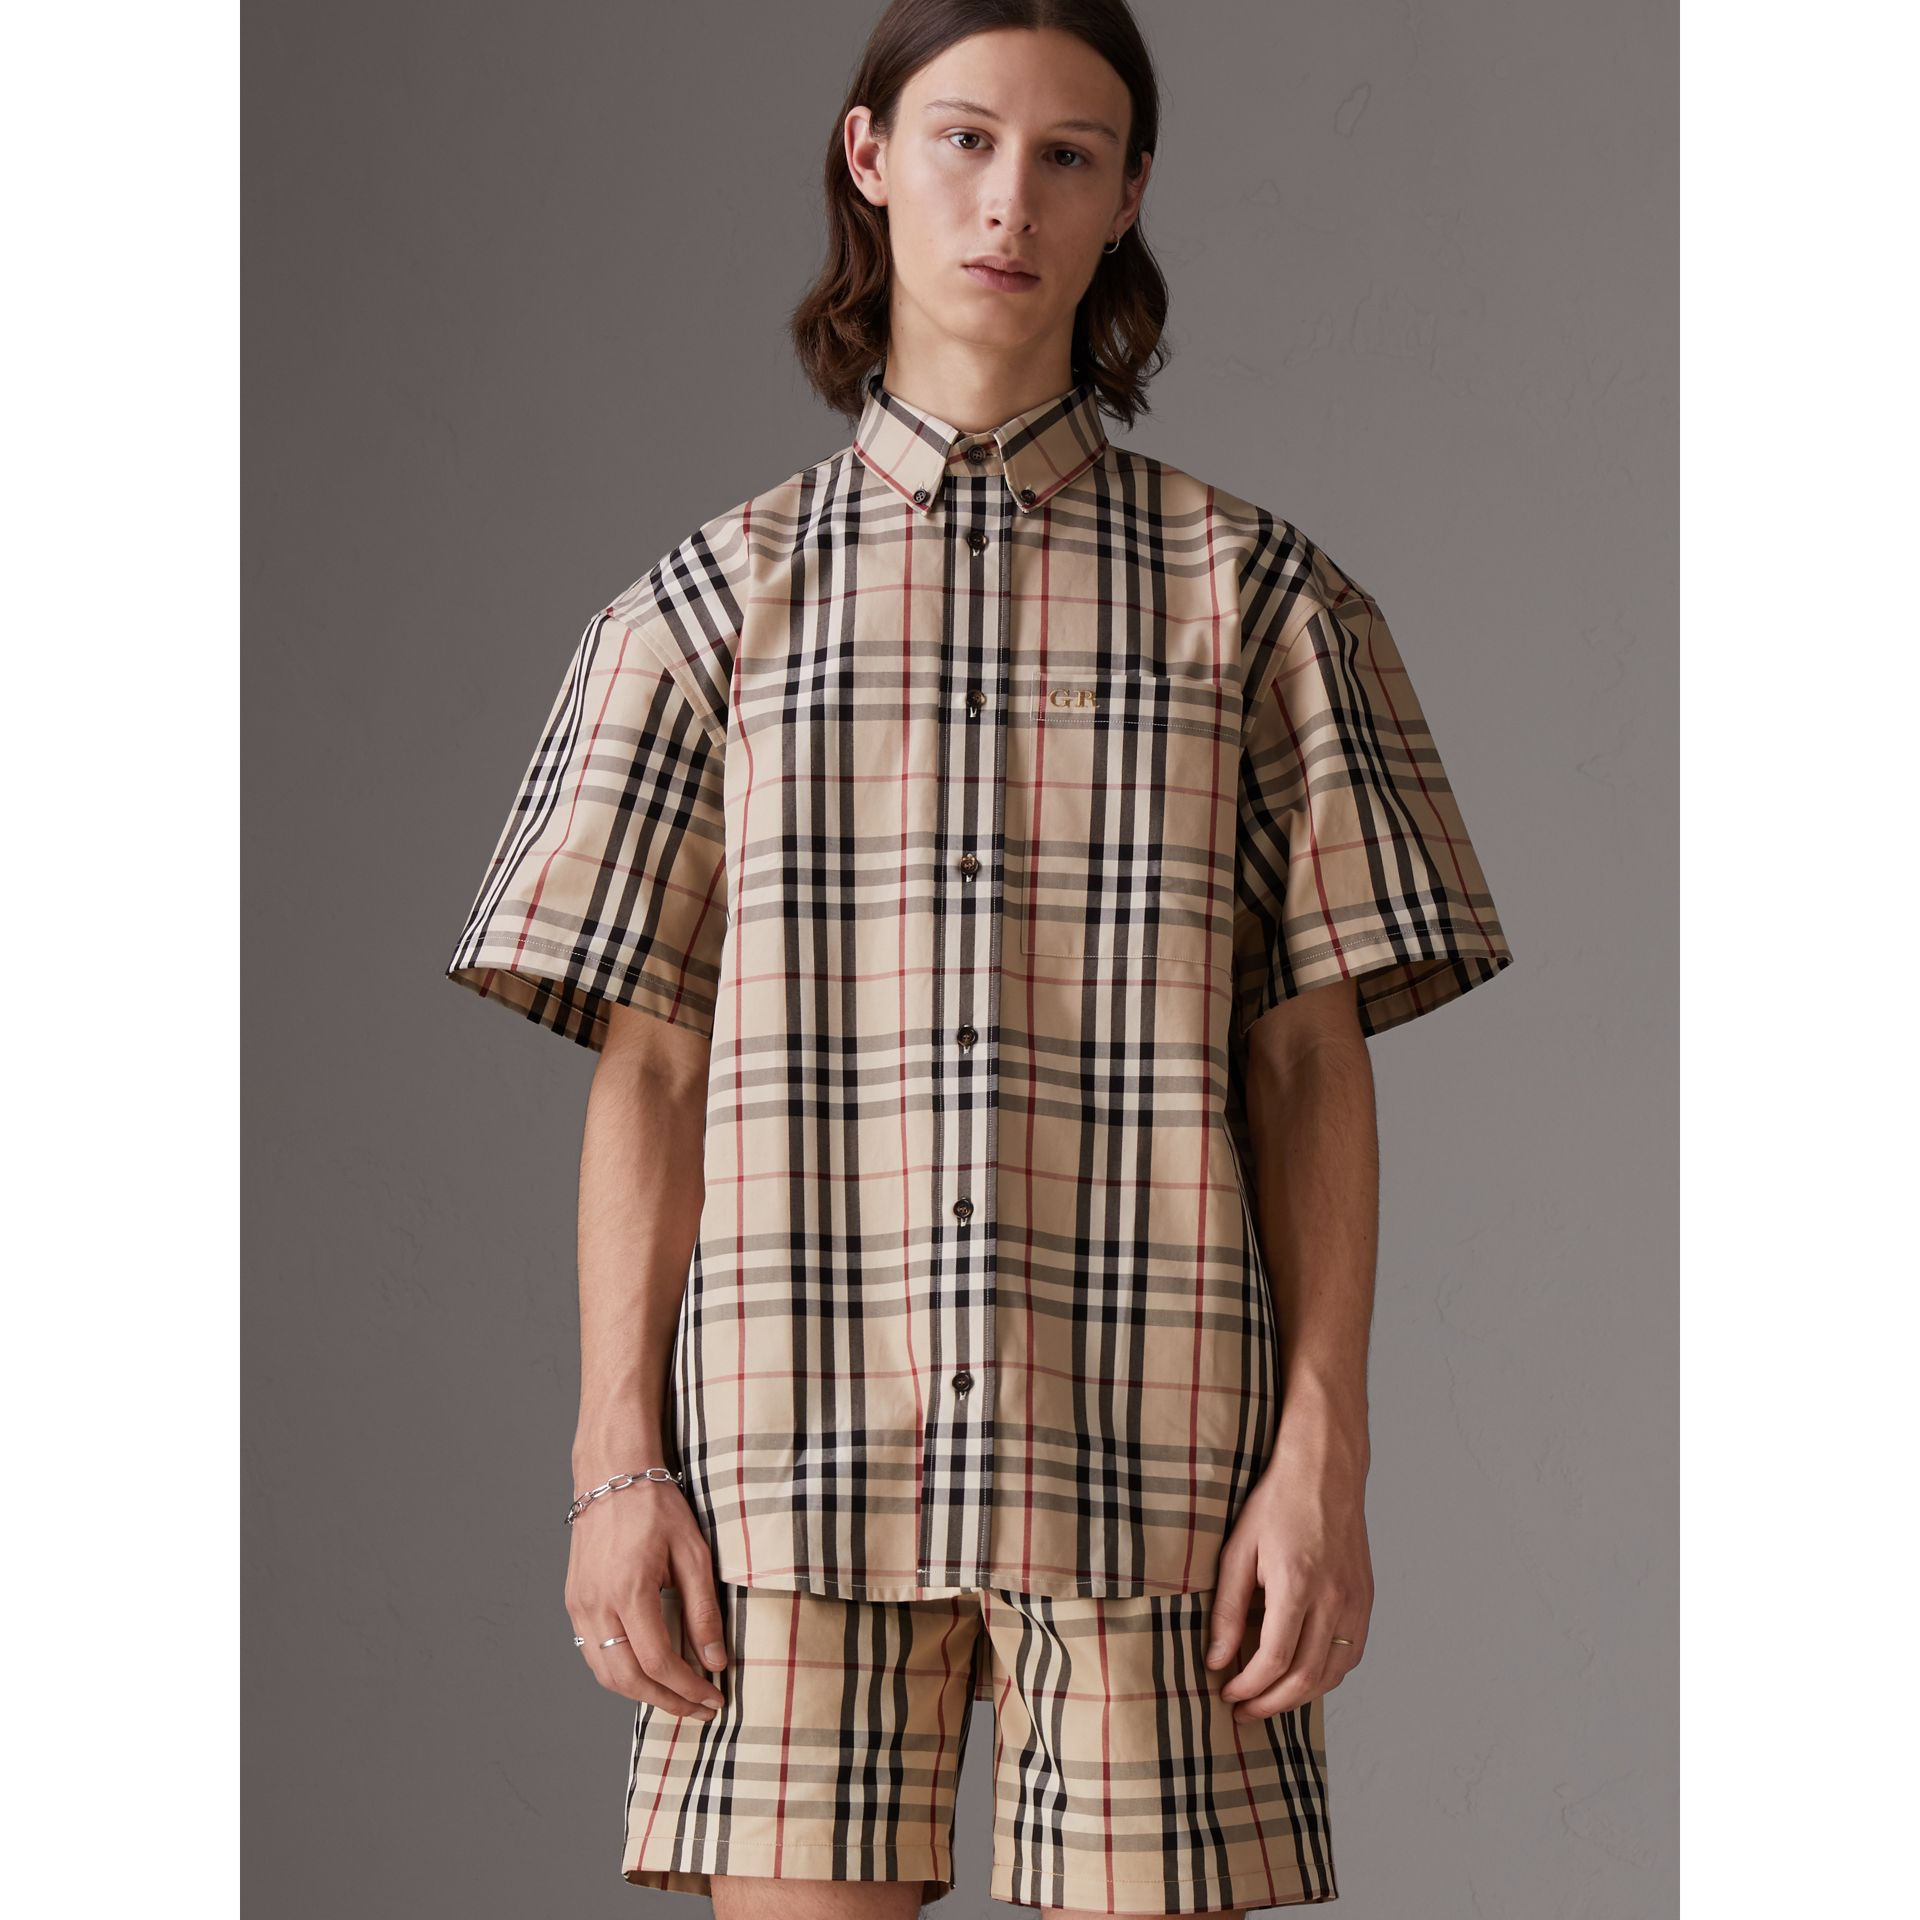 Gosha x Burberry Short-sleeve Check Shirt in Honey | Burberry Australia - gallery image 0